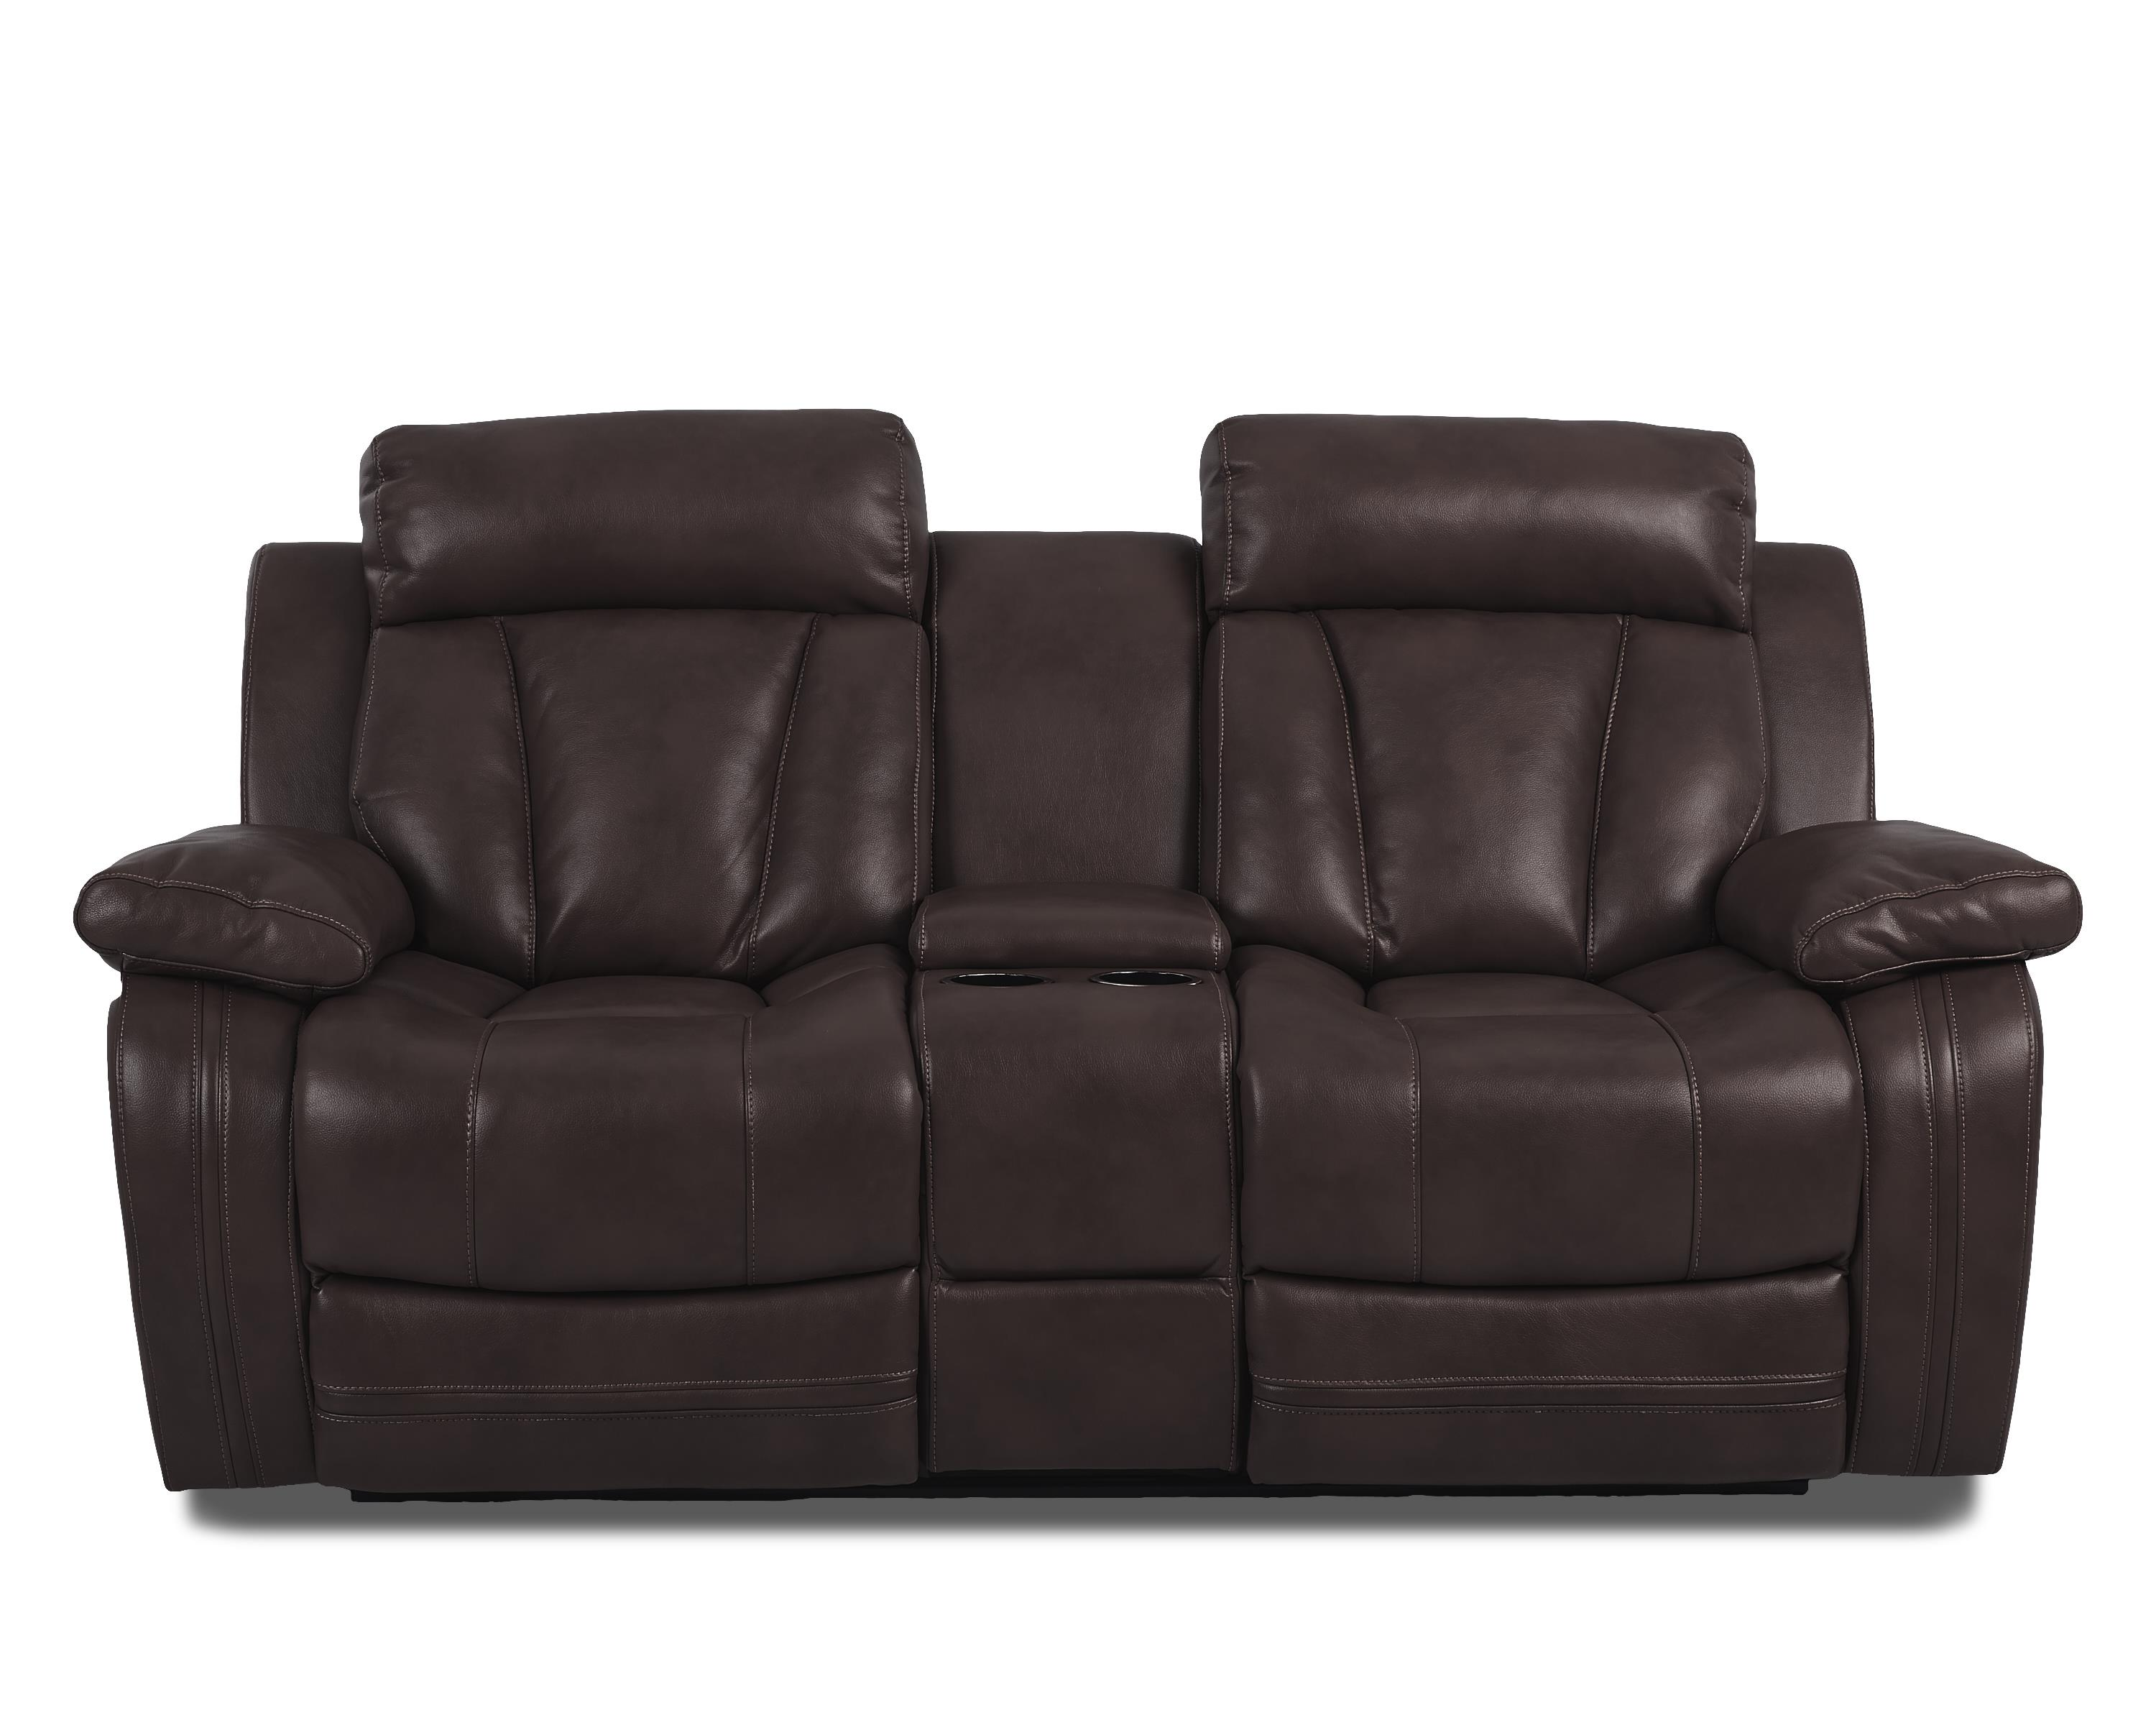 Atticus-US Power Console Reclining Loveseat by Klaussner International at Pilgrim Furniture City